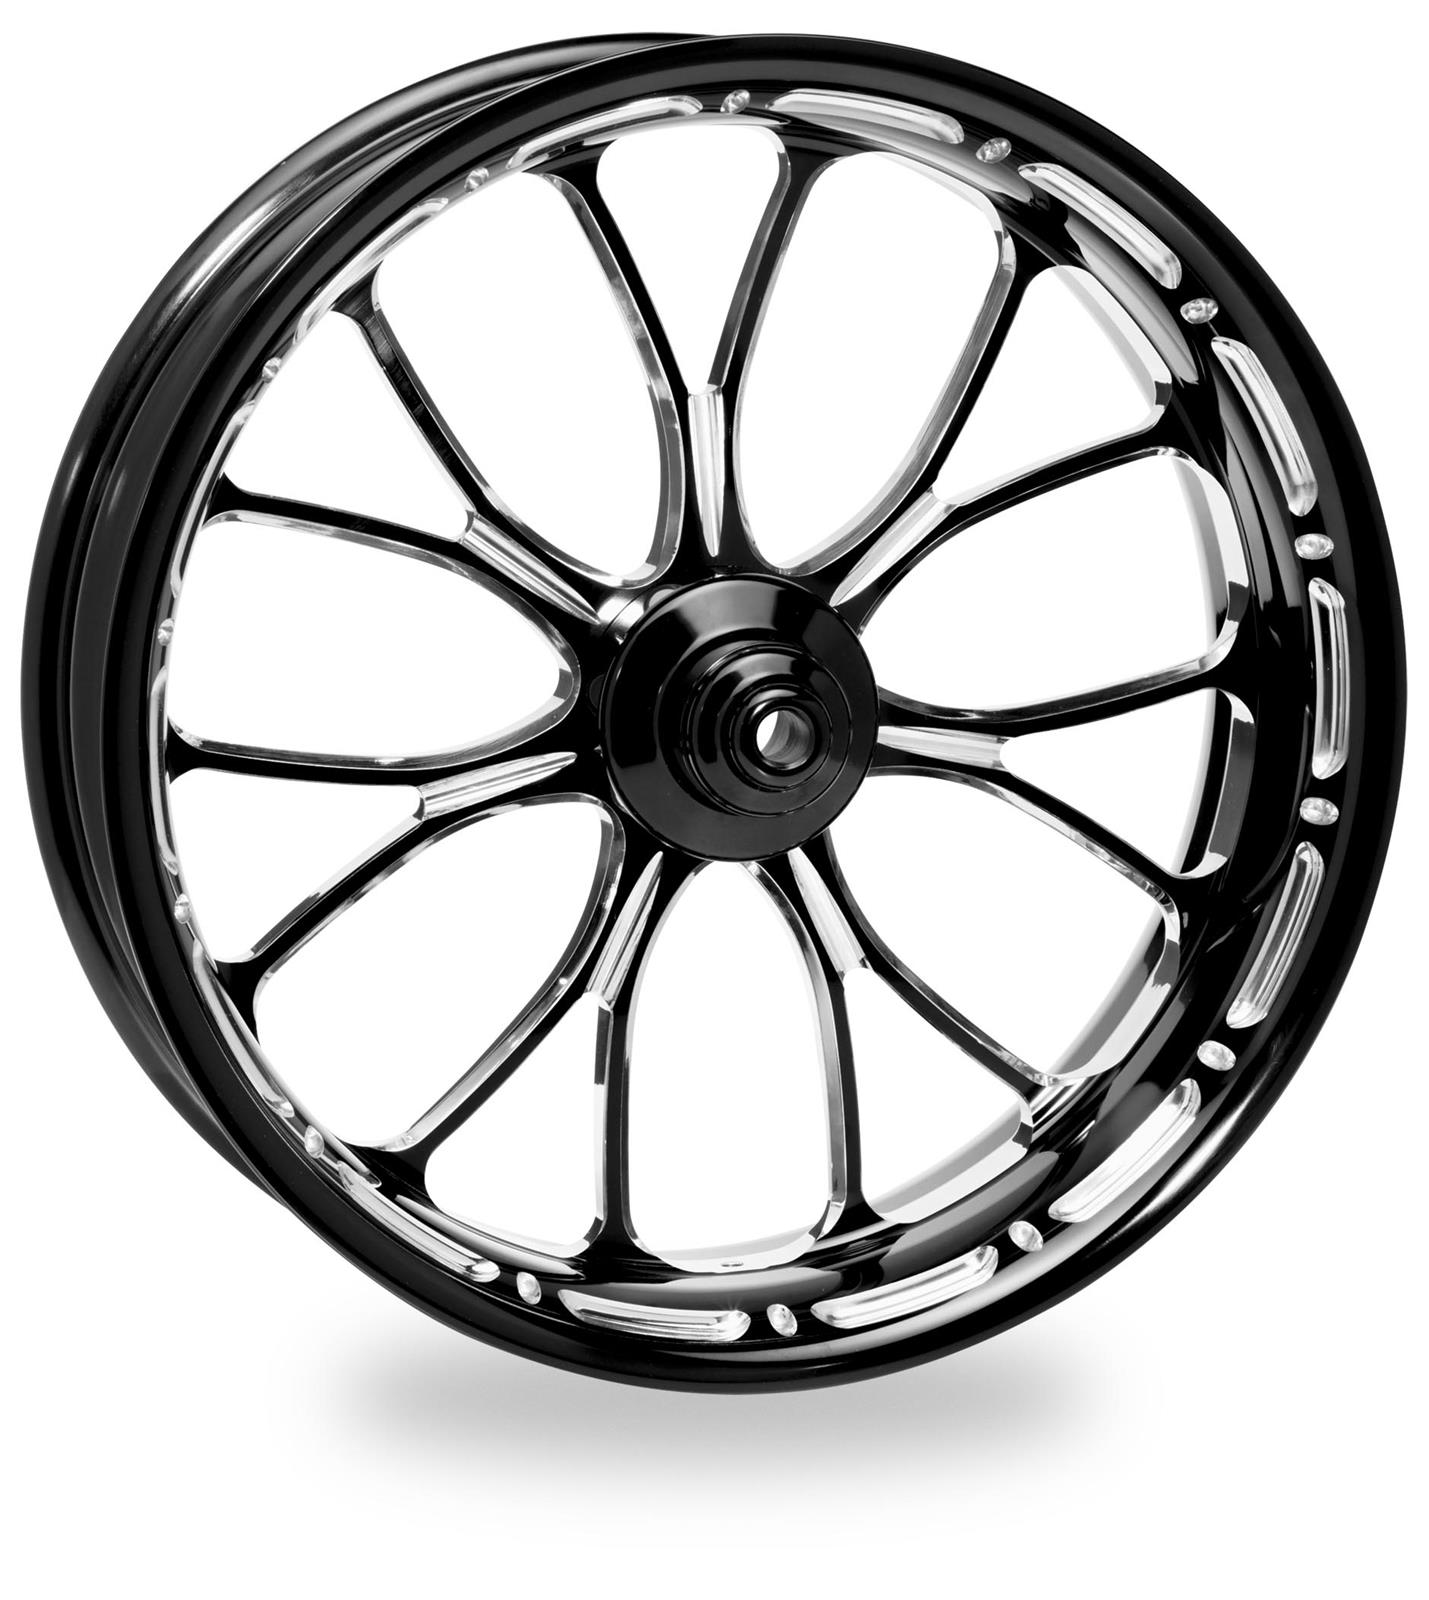 performance machine heathen contrast cut wheels 1240 7103r hea  performance machine heathen contrast cut wheels 1240 7103r hea free shipping on orders over 99 at summit racing